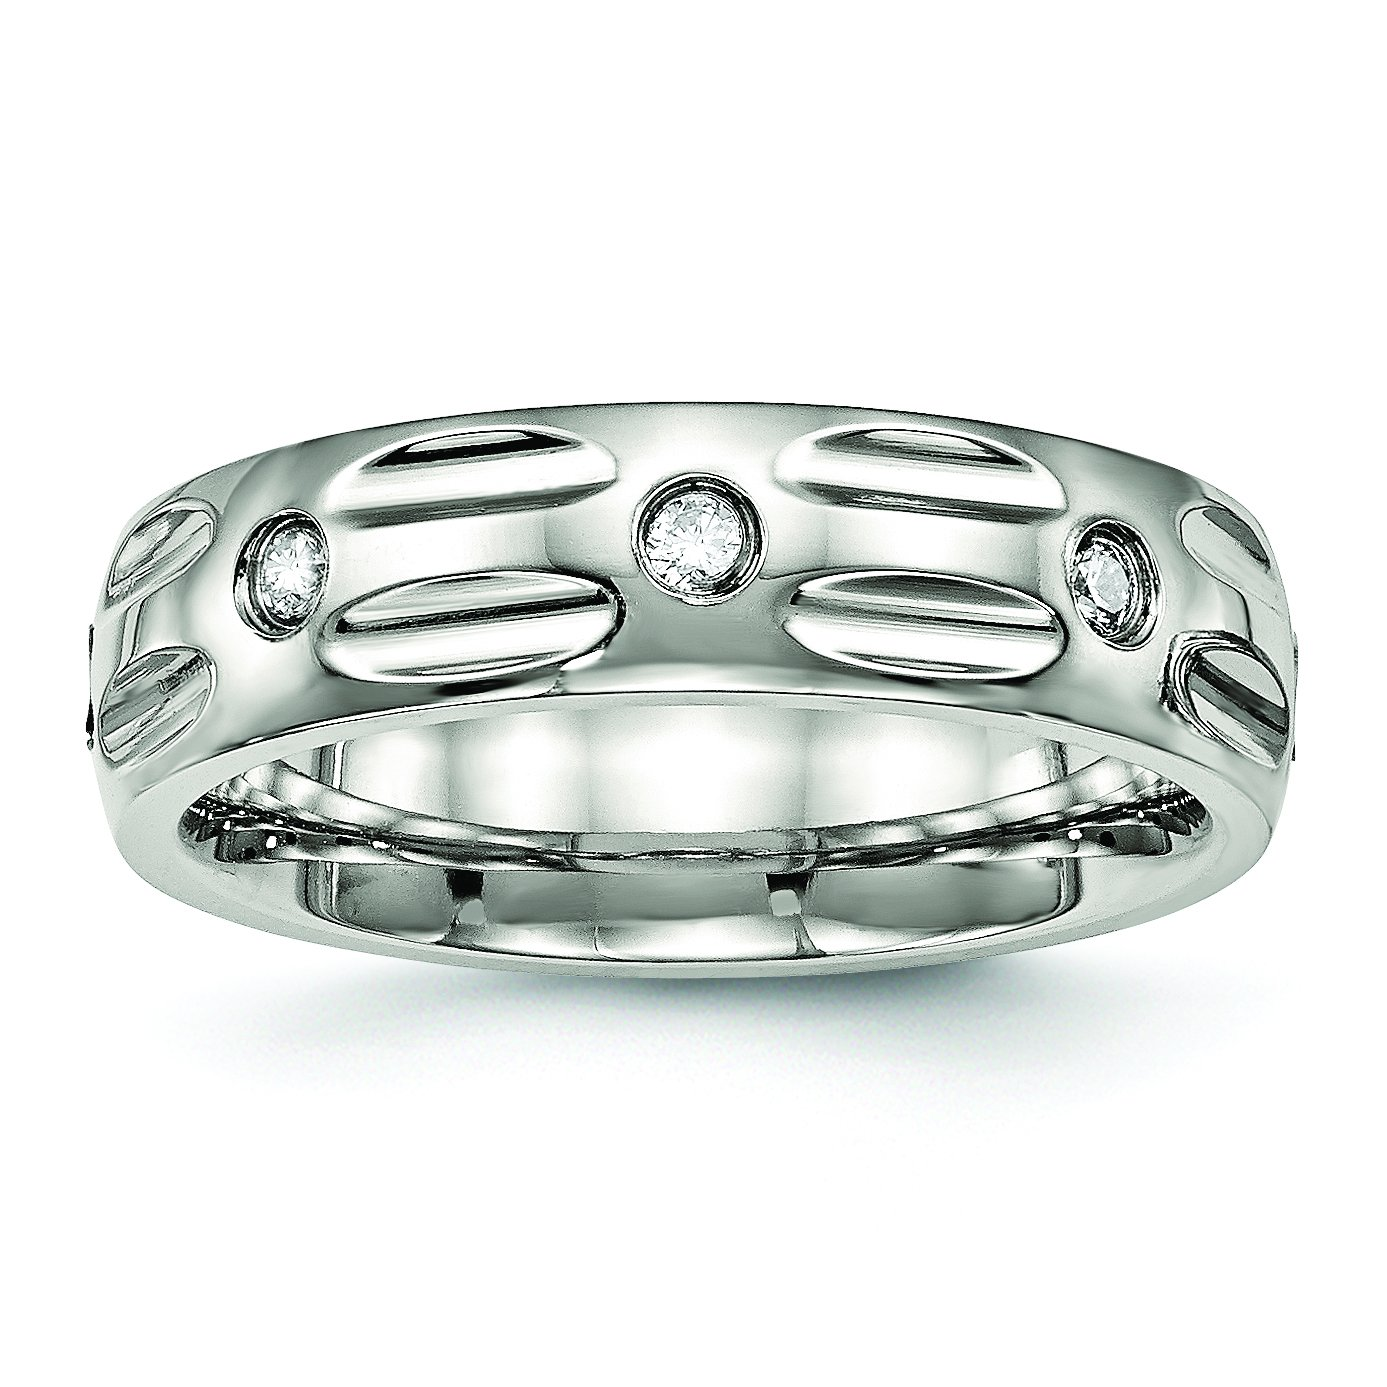 Grooved Bridal Stainless Steel Polished Grooved CZ Ring SR486-6.5Polished CZ Stainless Steel